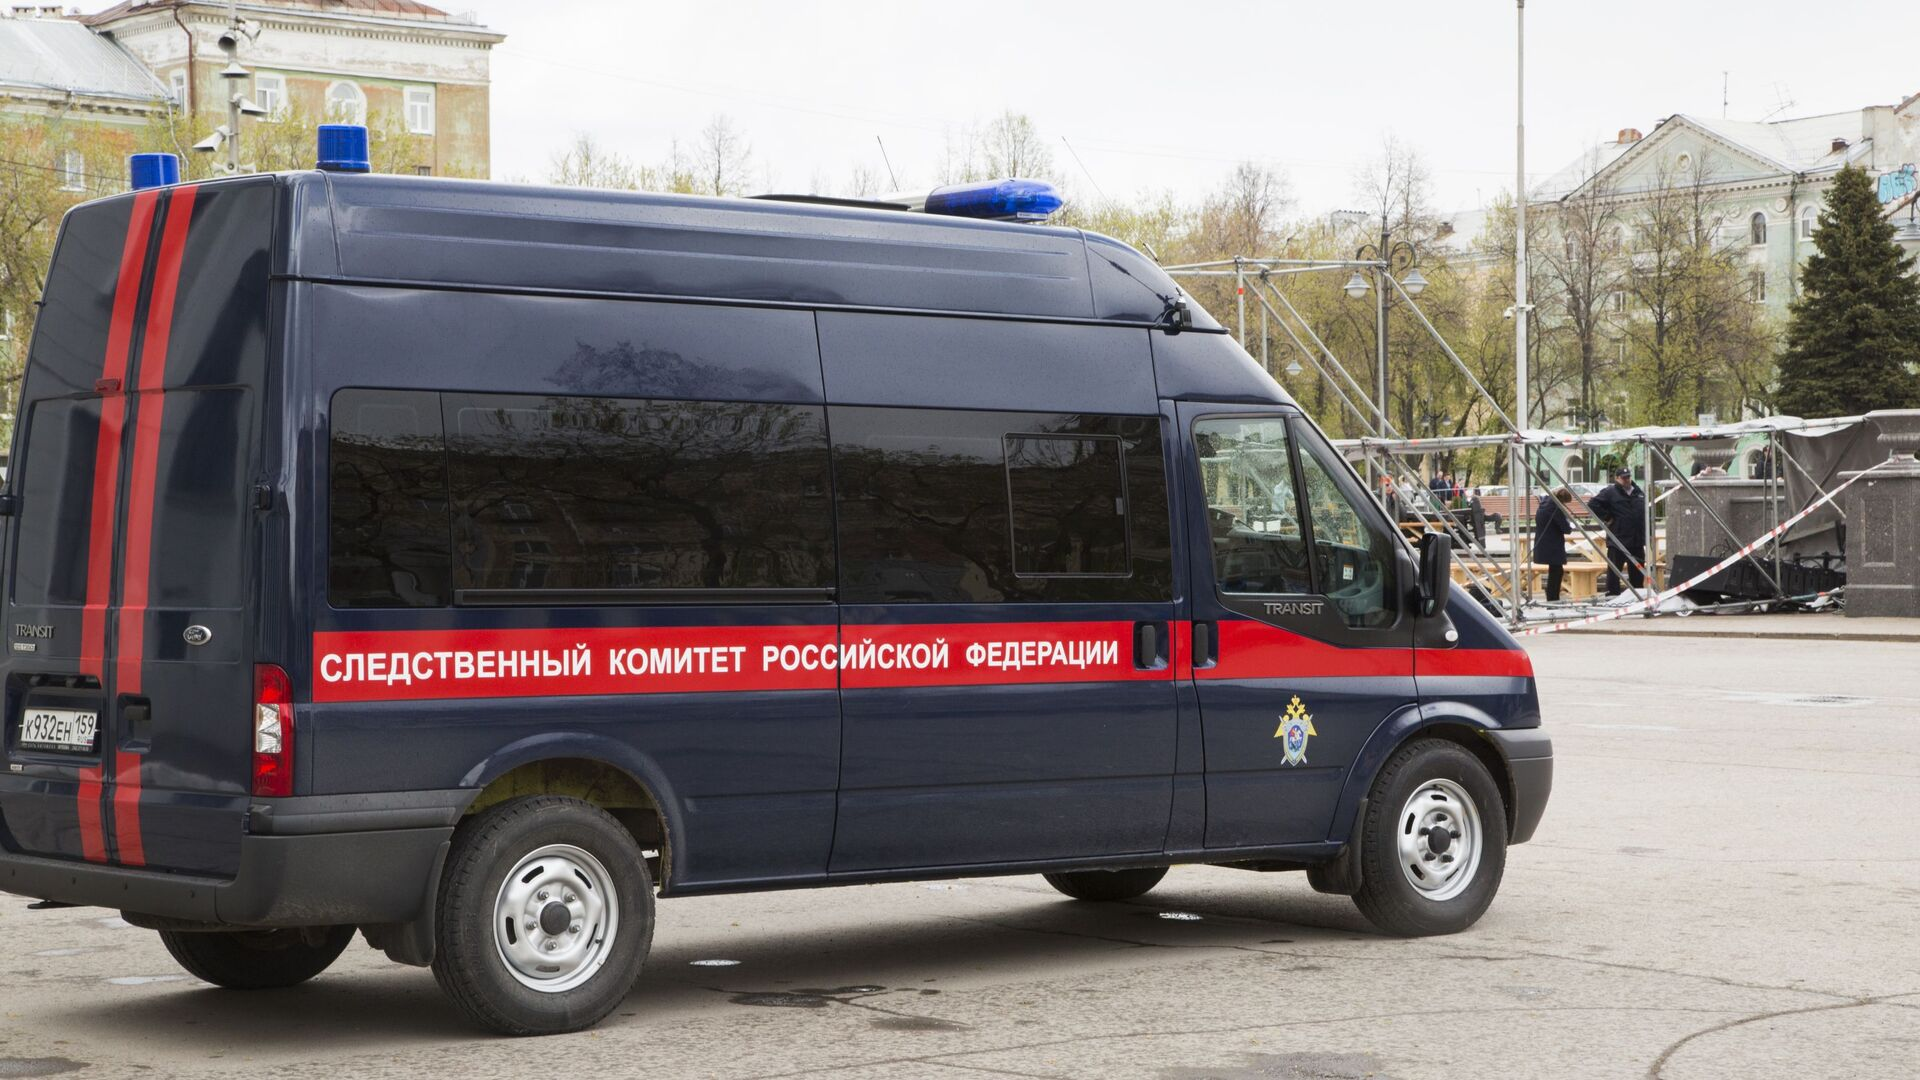 A vehicle of the Russian Investigative Committee (File) - Sputnik International, 1920, 28.09.2021